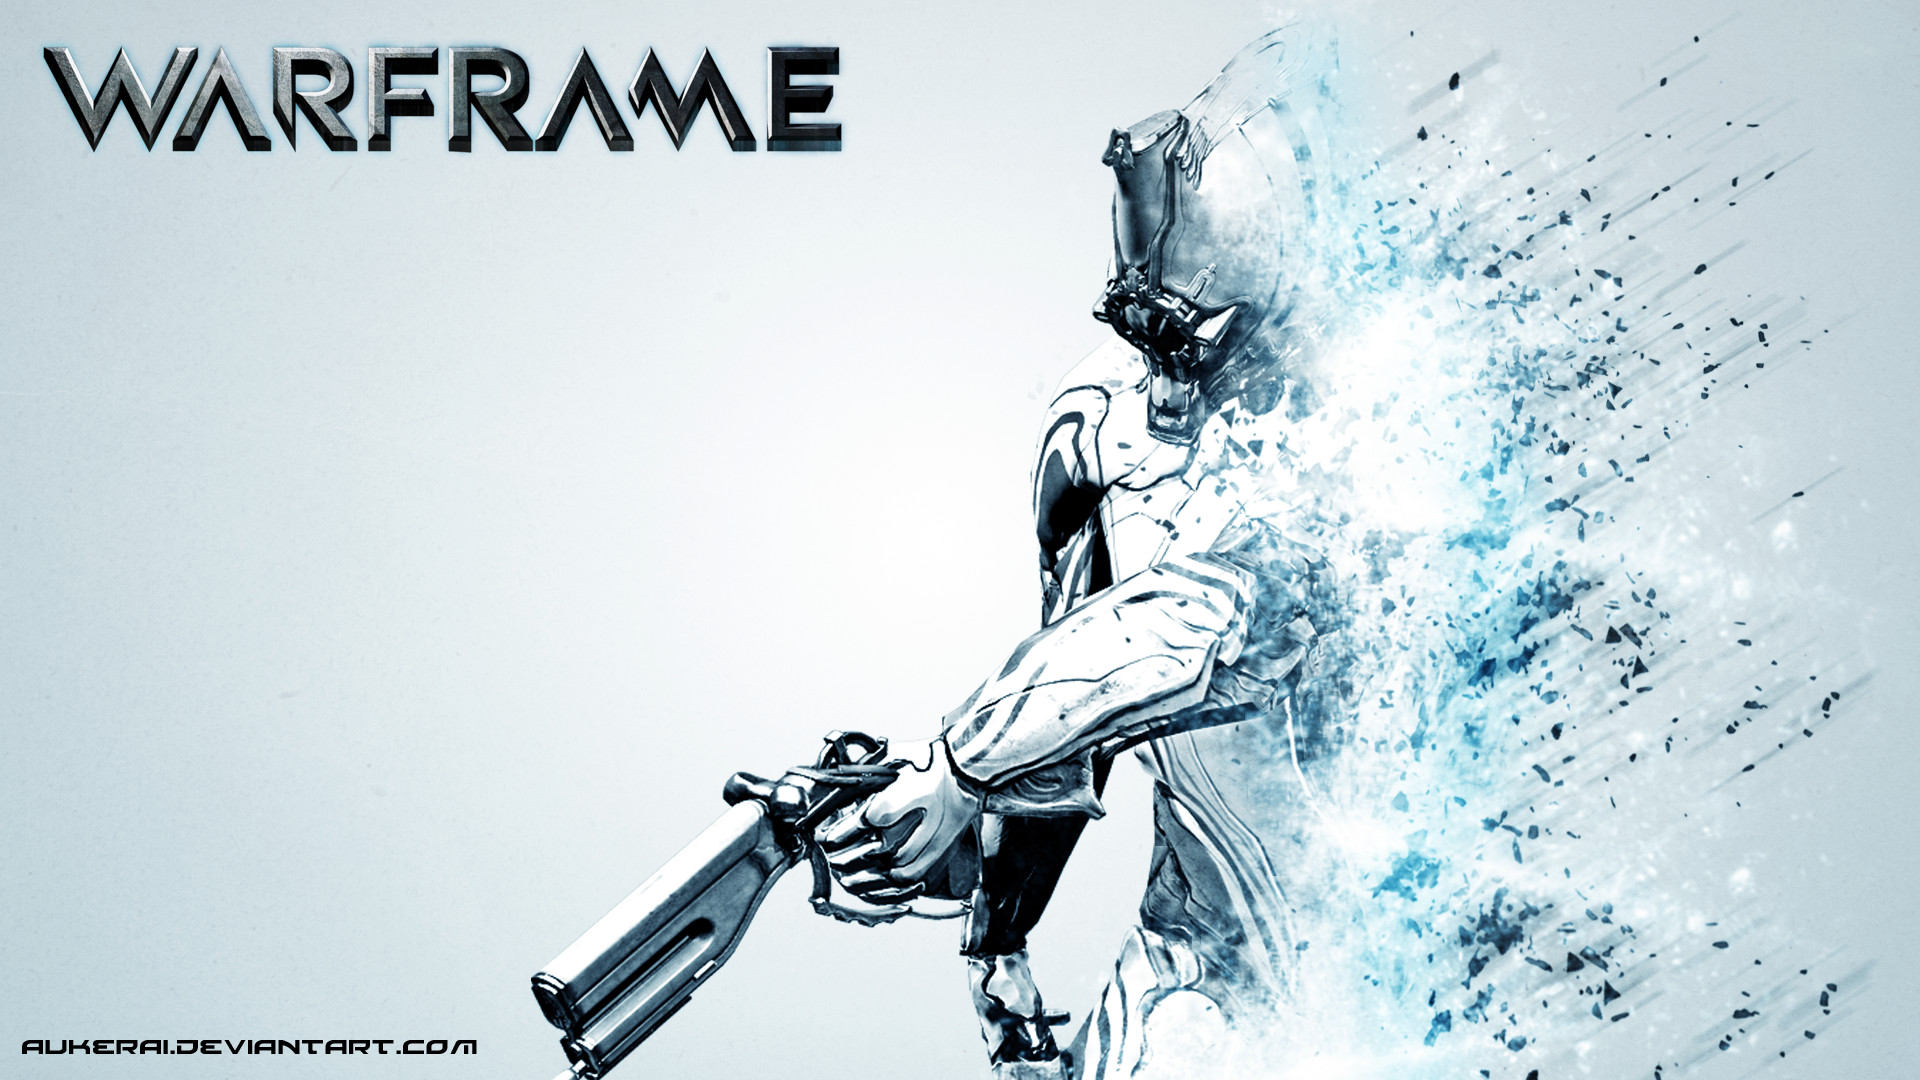 Nice HD Wallpapers Collection of Warframe – 1920×1080, 05.26.14